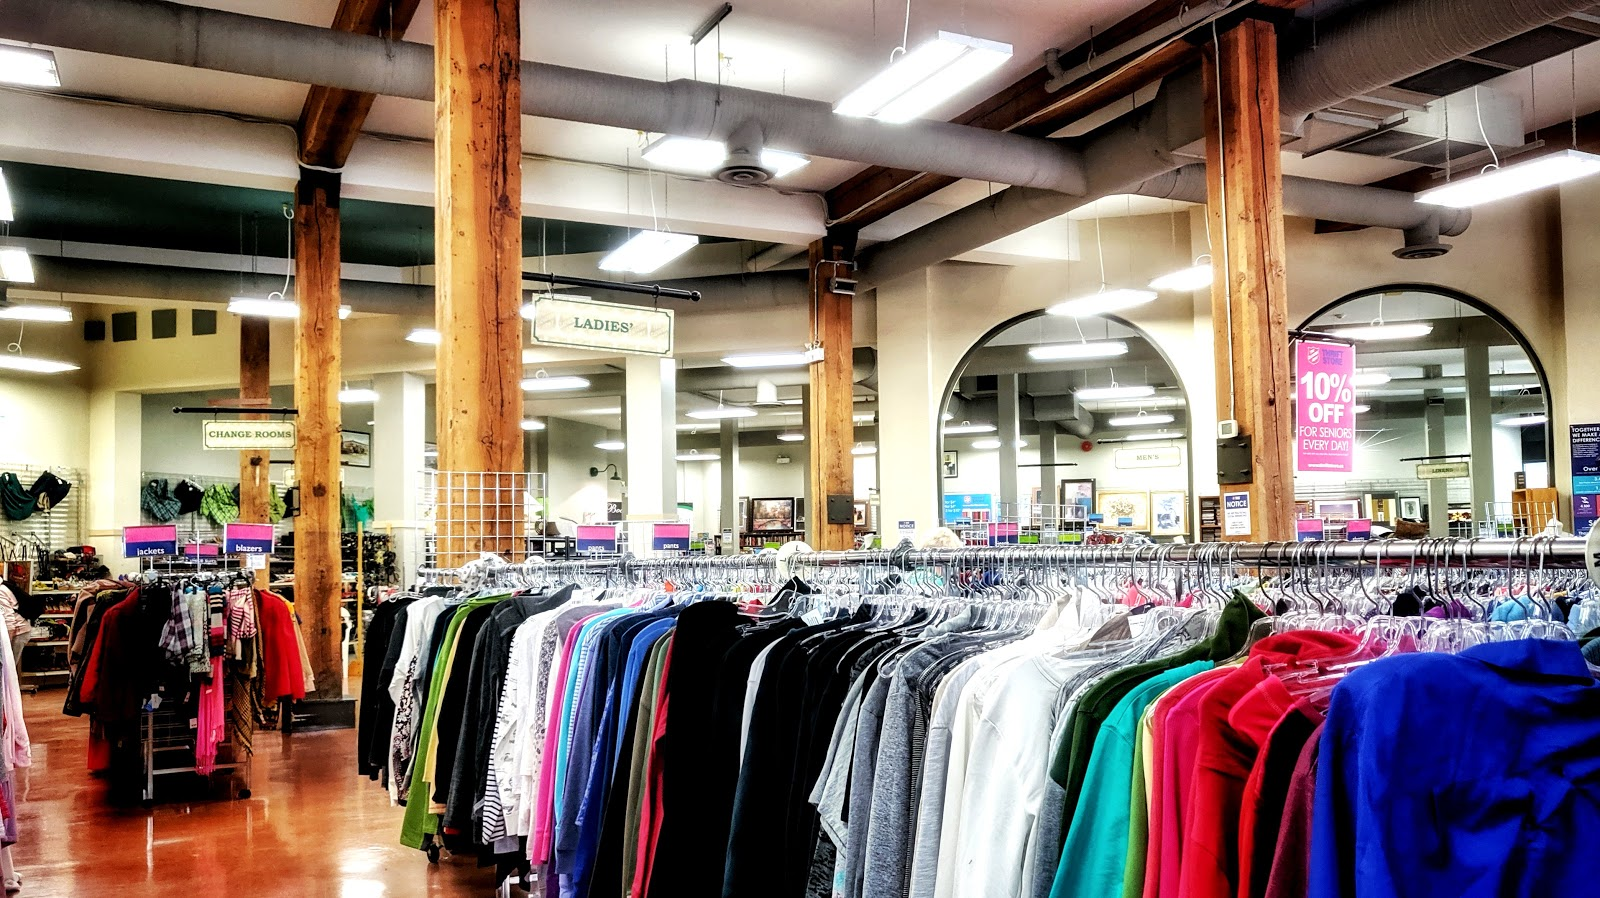 Huge department store filled with clothes